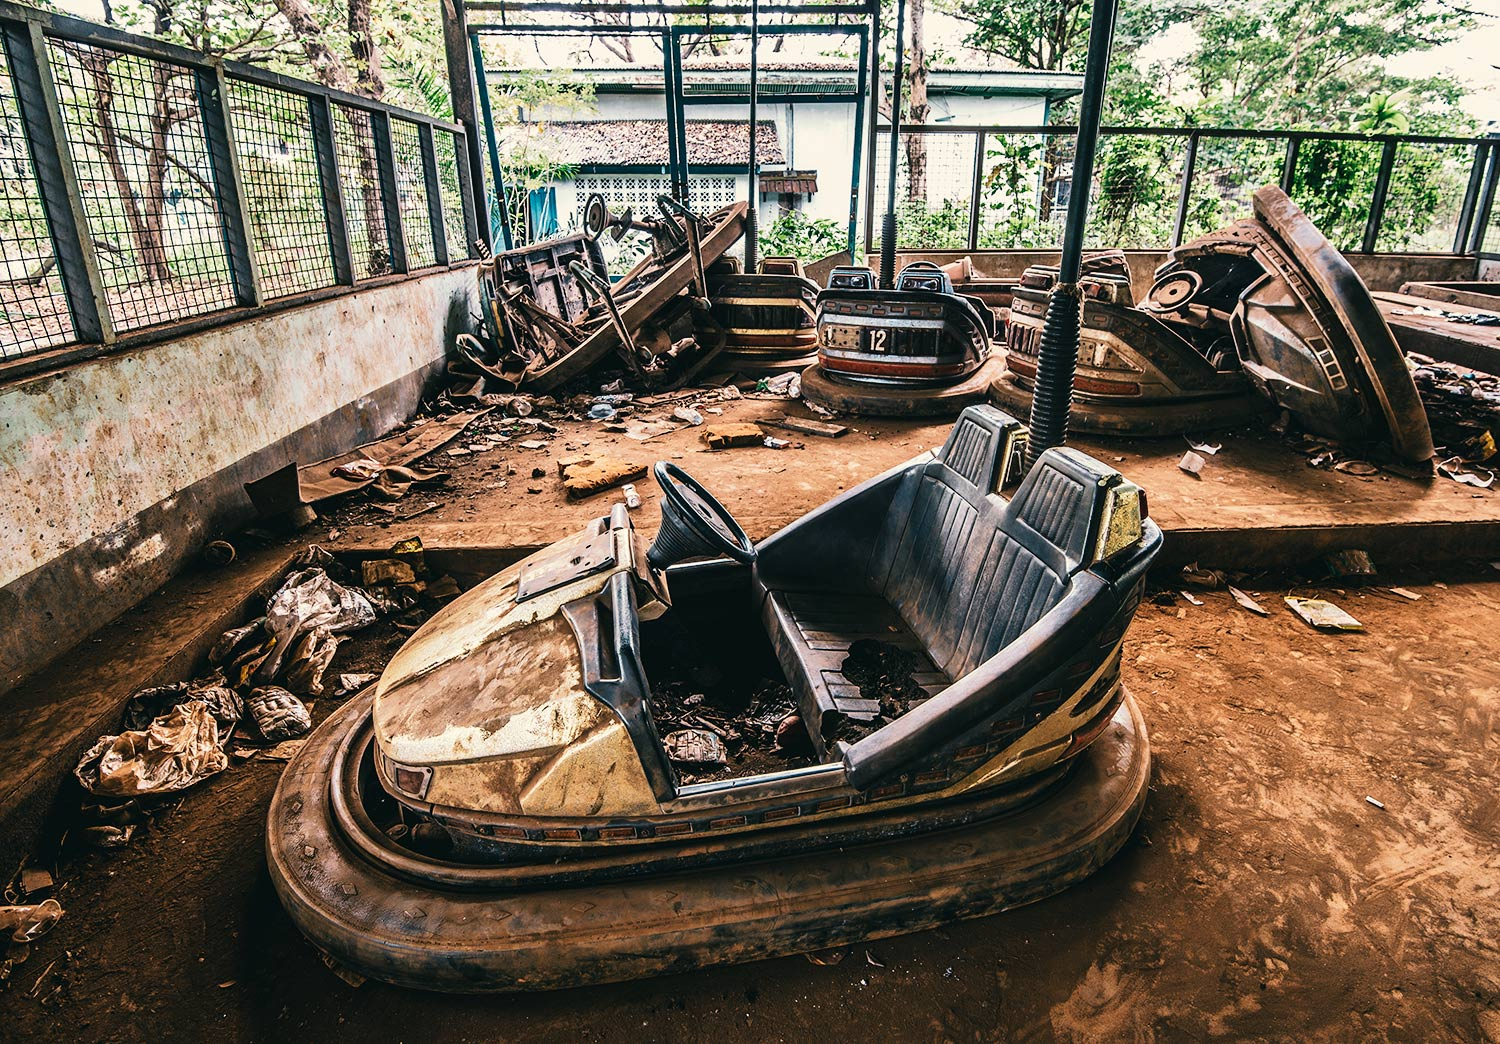 Broken bumper cars in the Abandoned Amusement Park: Escaped the pile up but not the ravages of time.